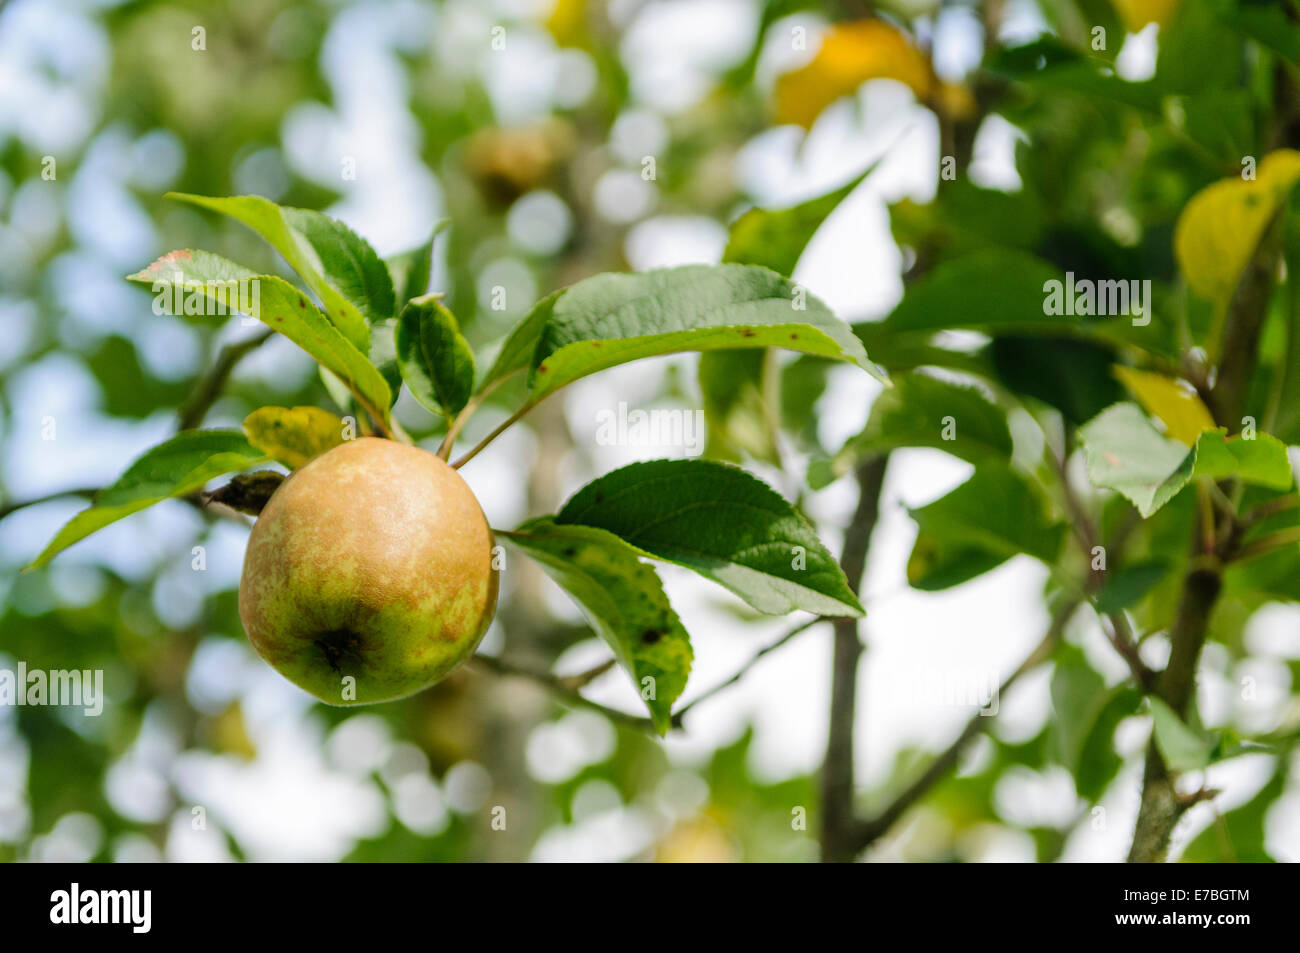 Bramley apple growing on a tree in a County Armagh orchard - Stock Image